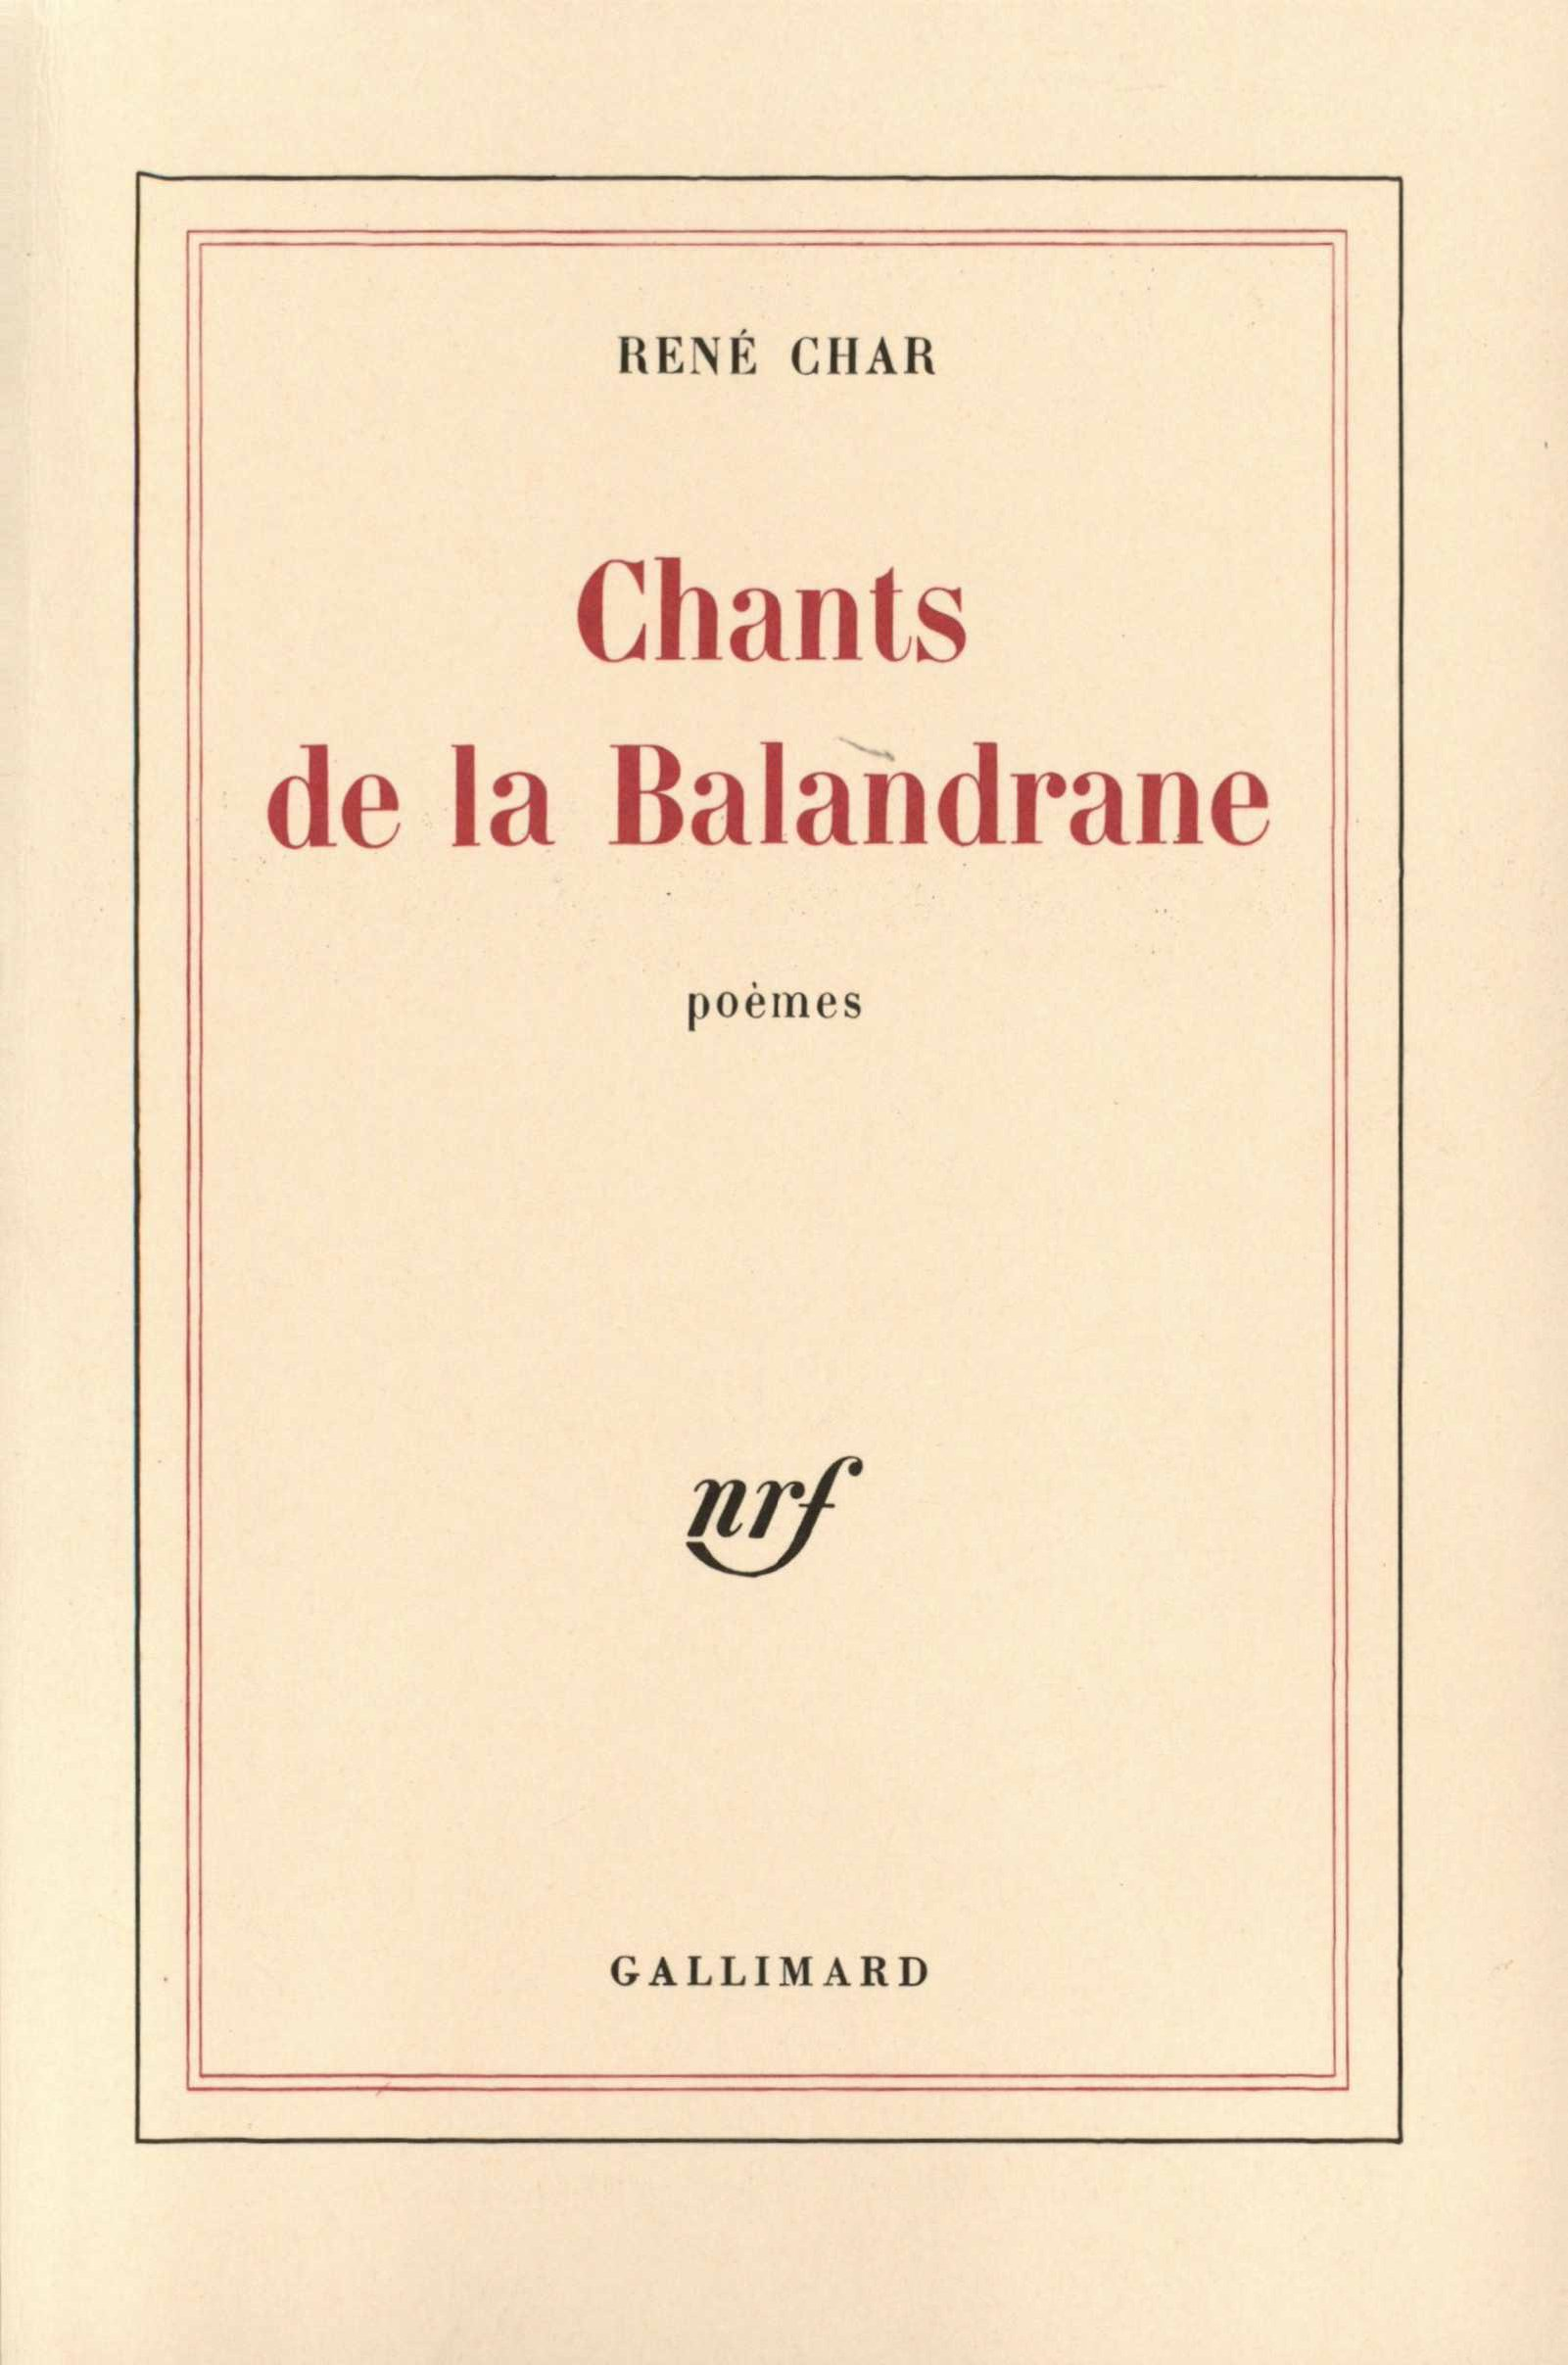 Chants de la Balandrane (1975-1977)